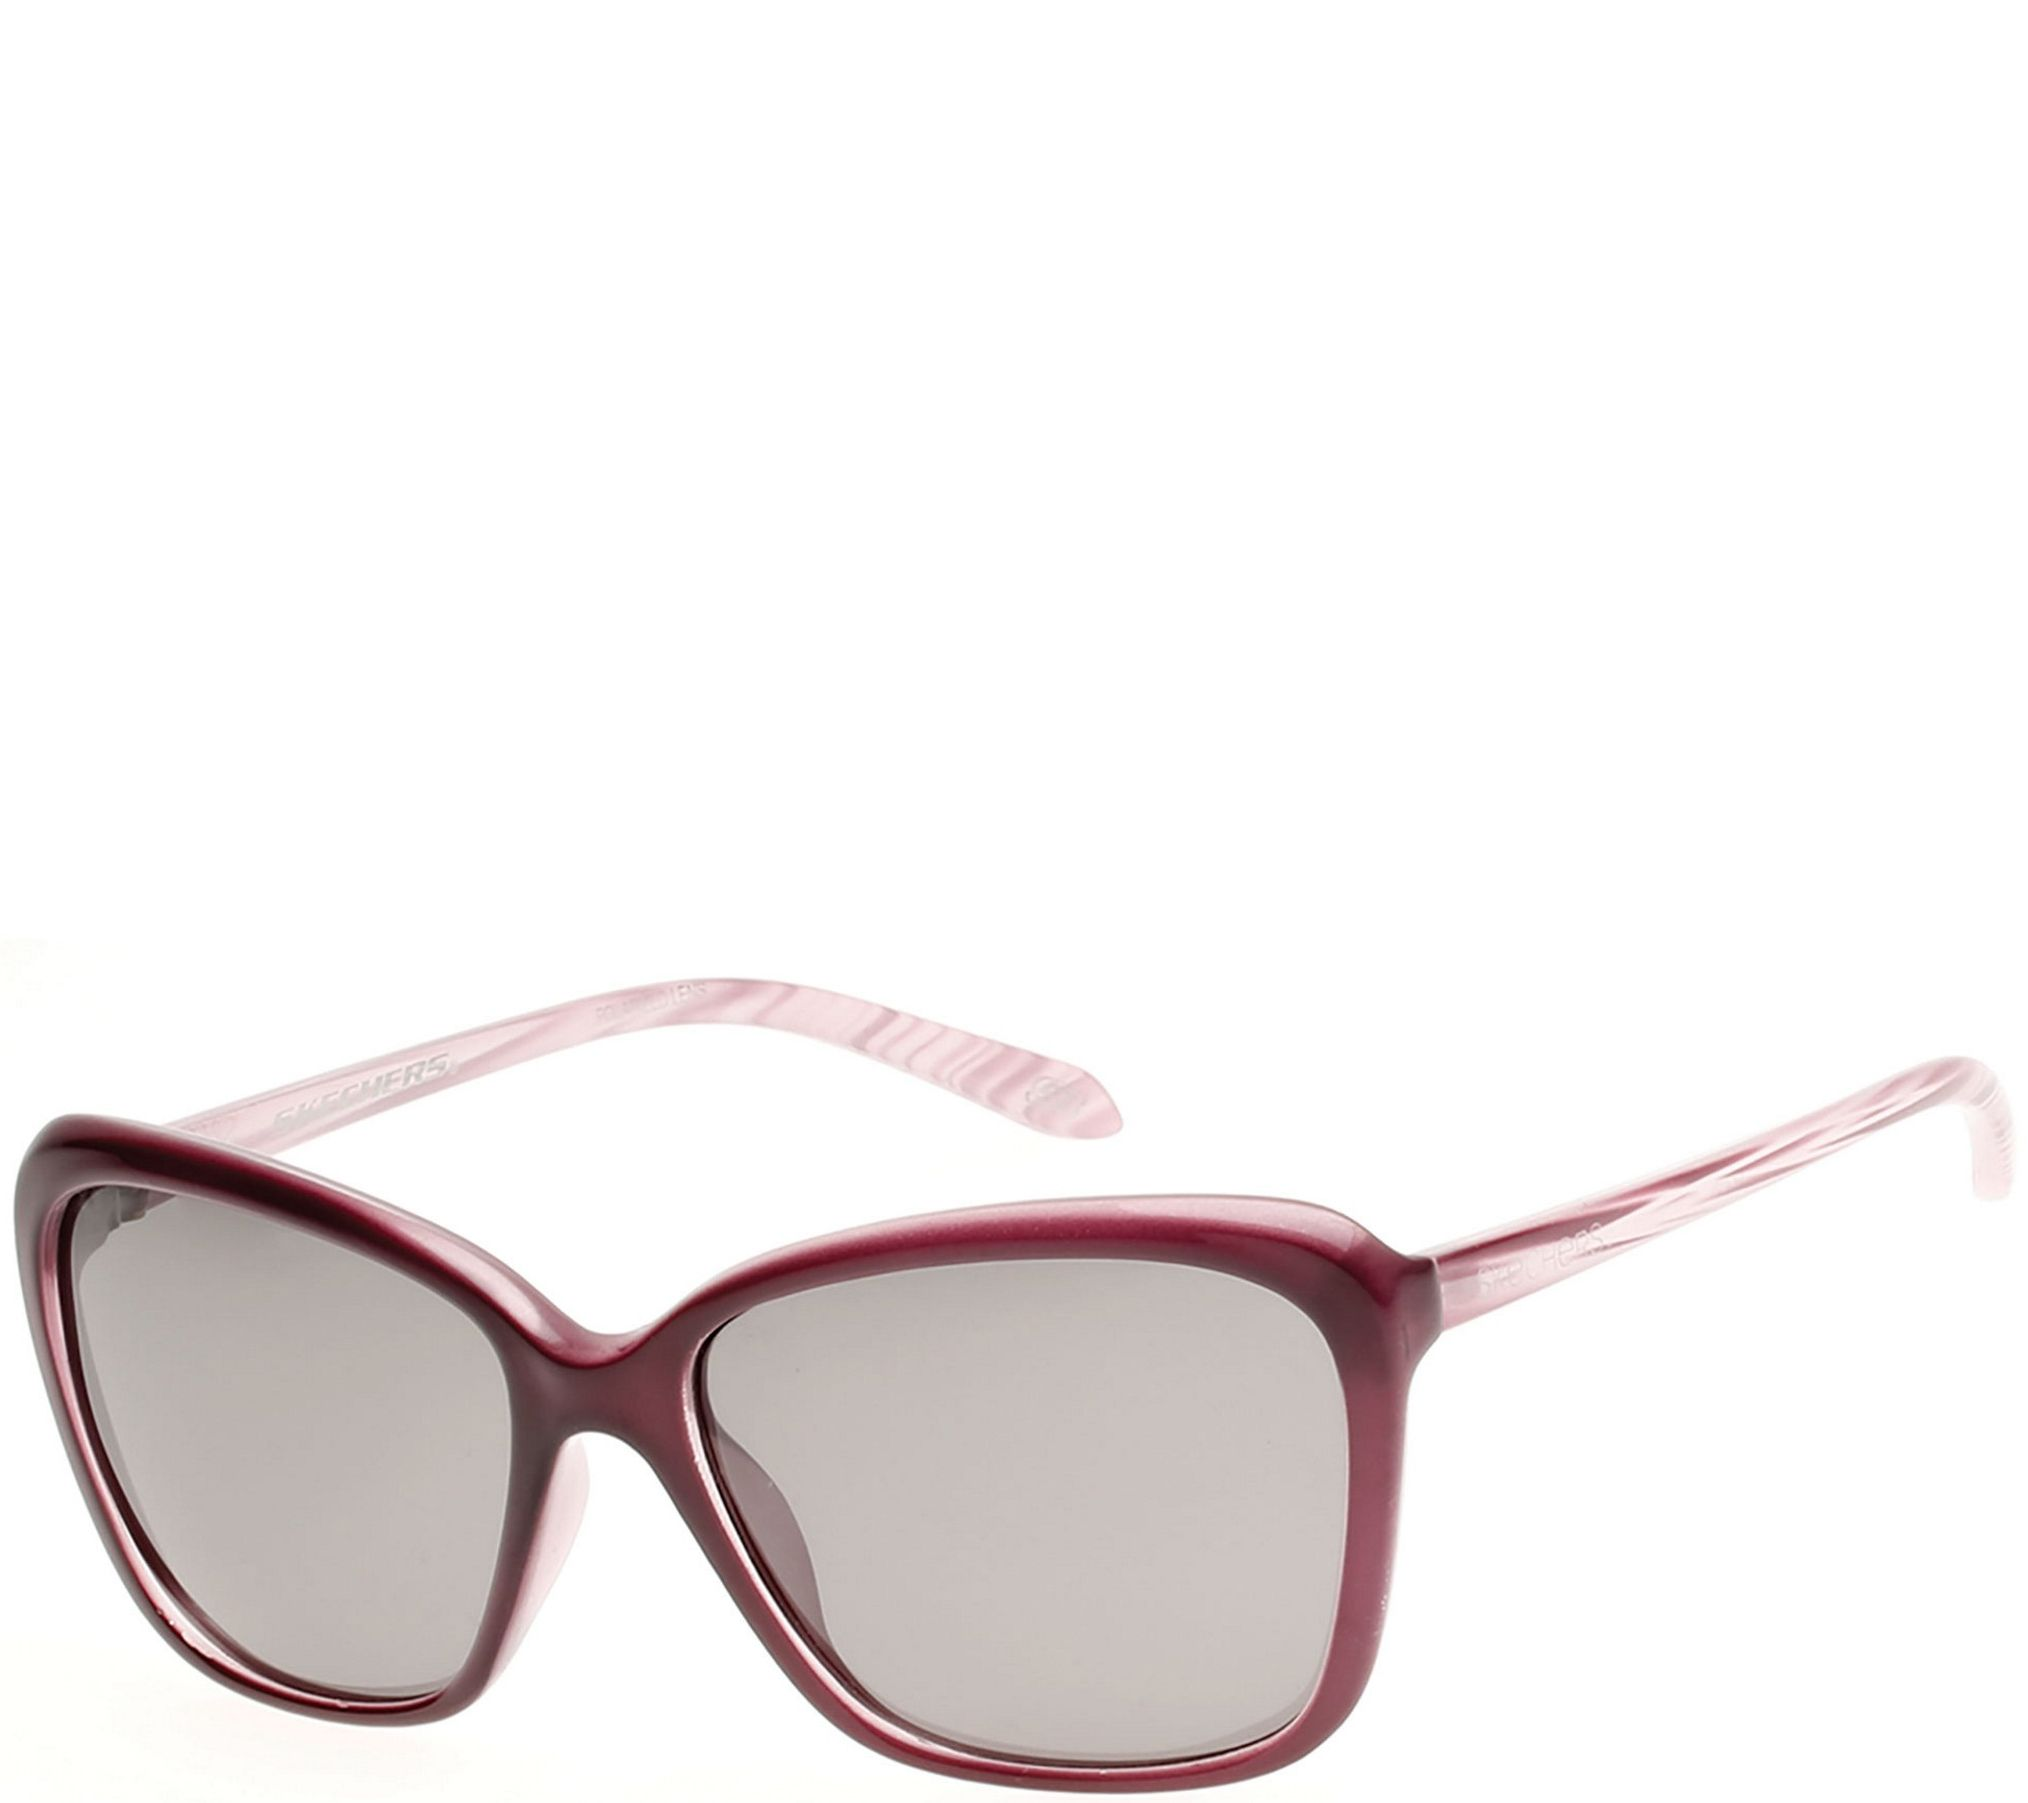 Skechers Women\'s Polarized Sunglasses - Burgundy - Page 1 — QVC.com